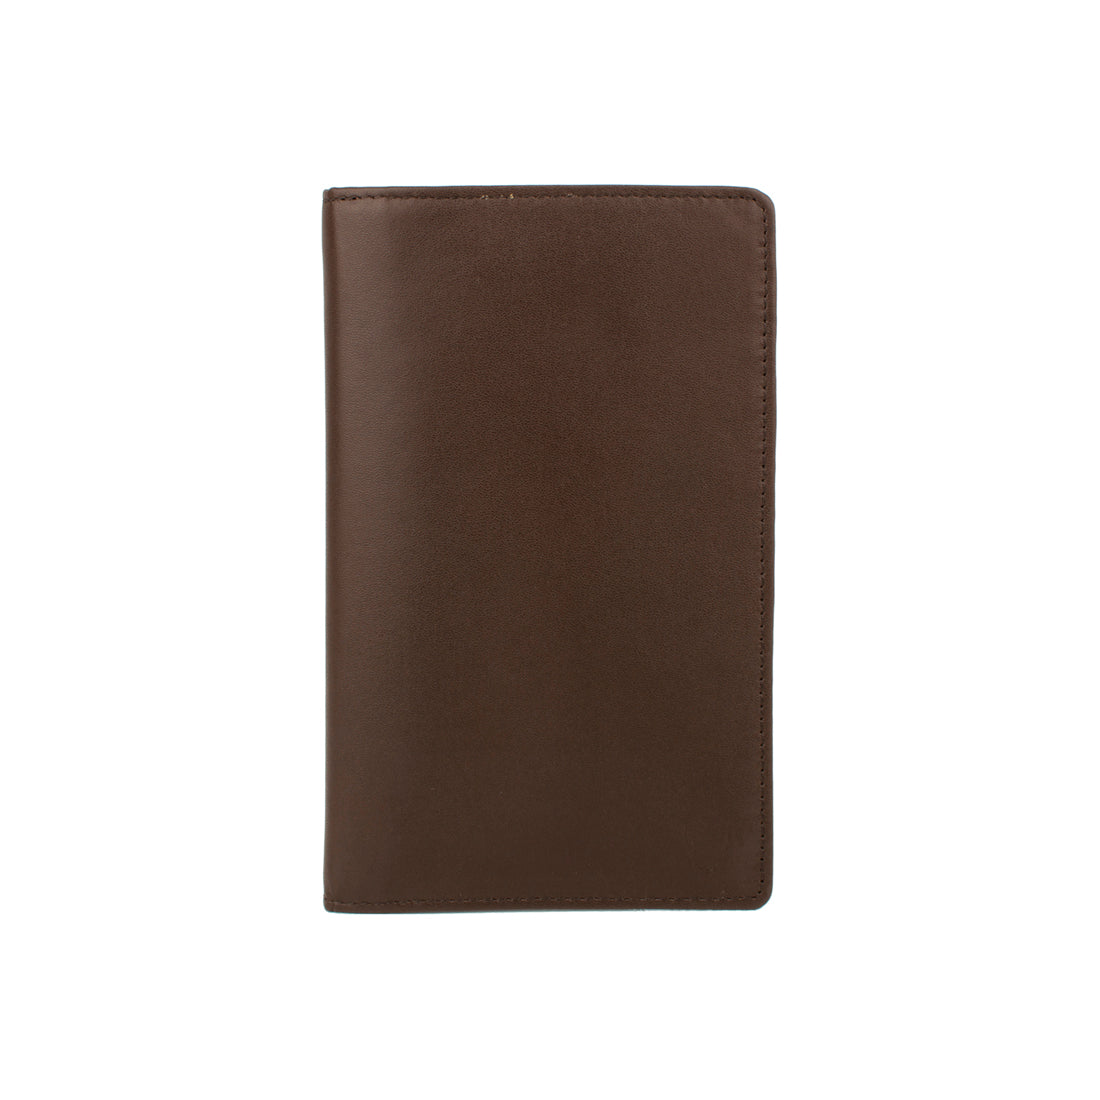 EE 277-F031 PASSPORT HOLDER